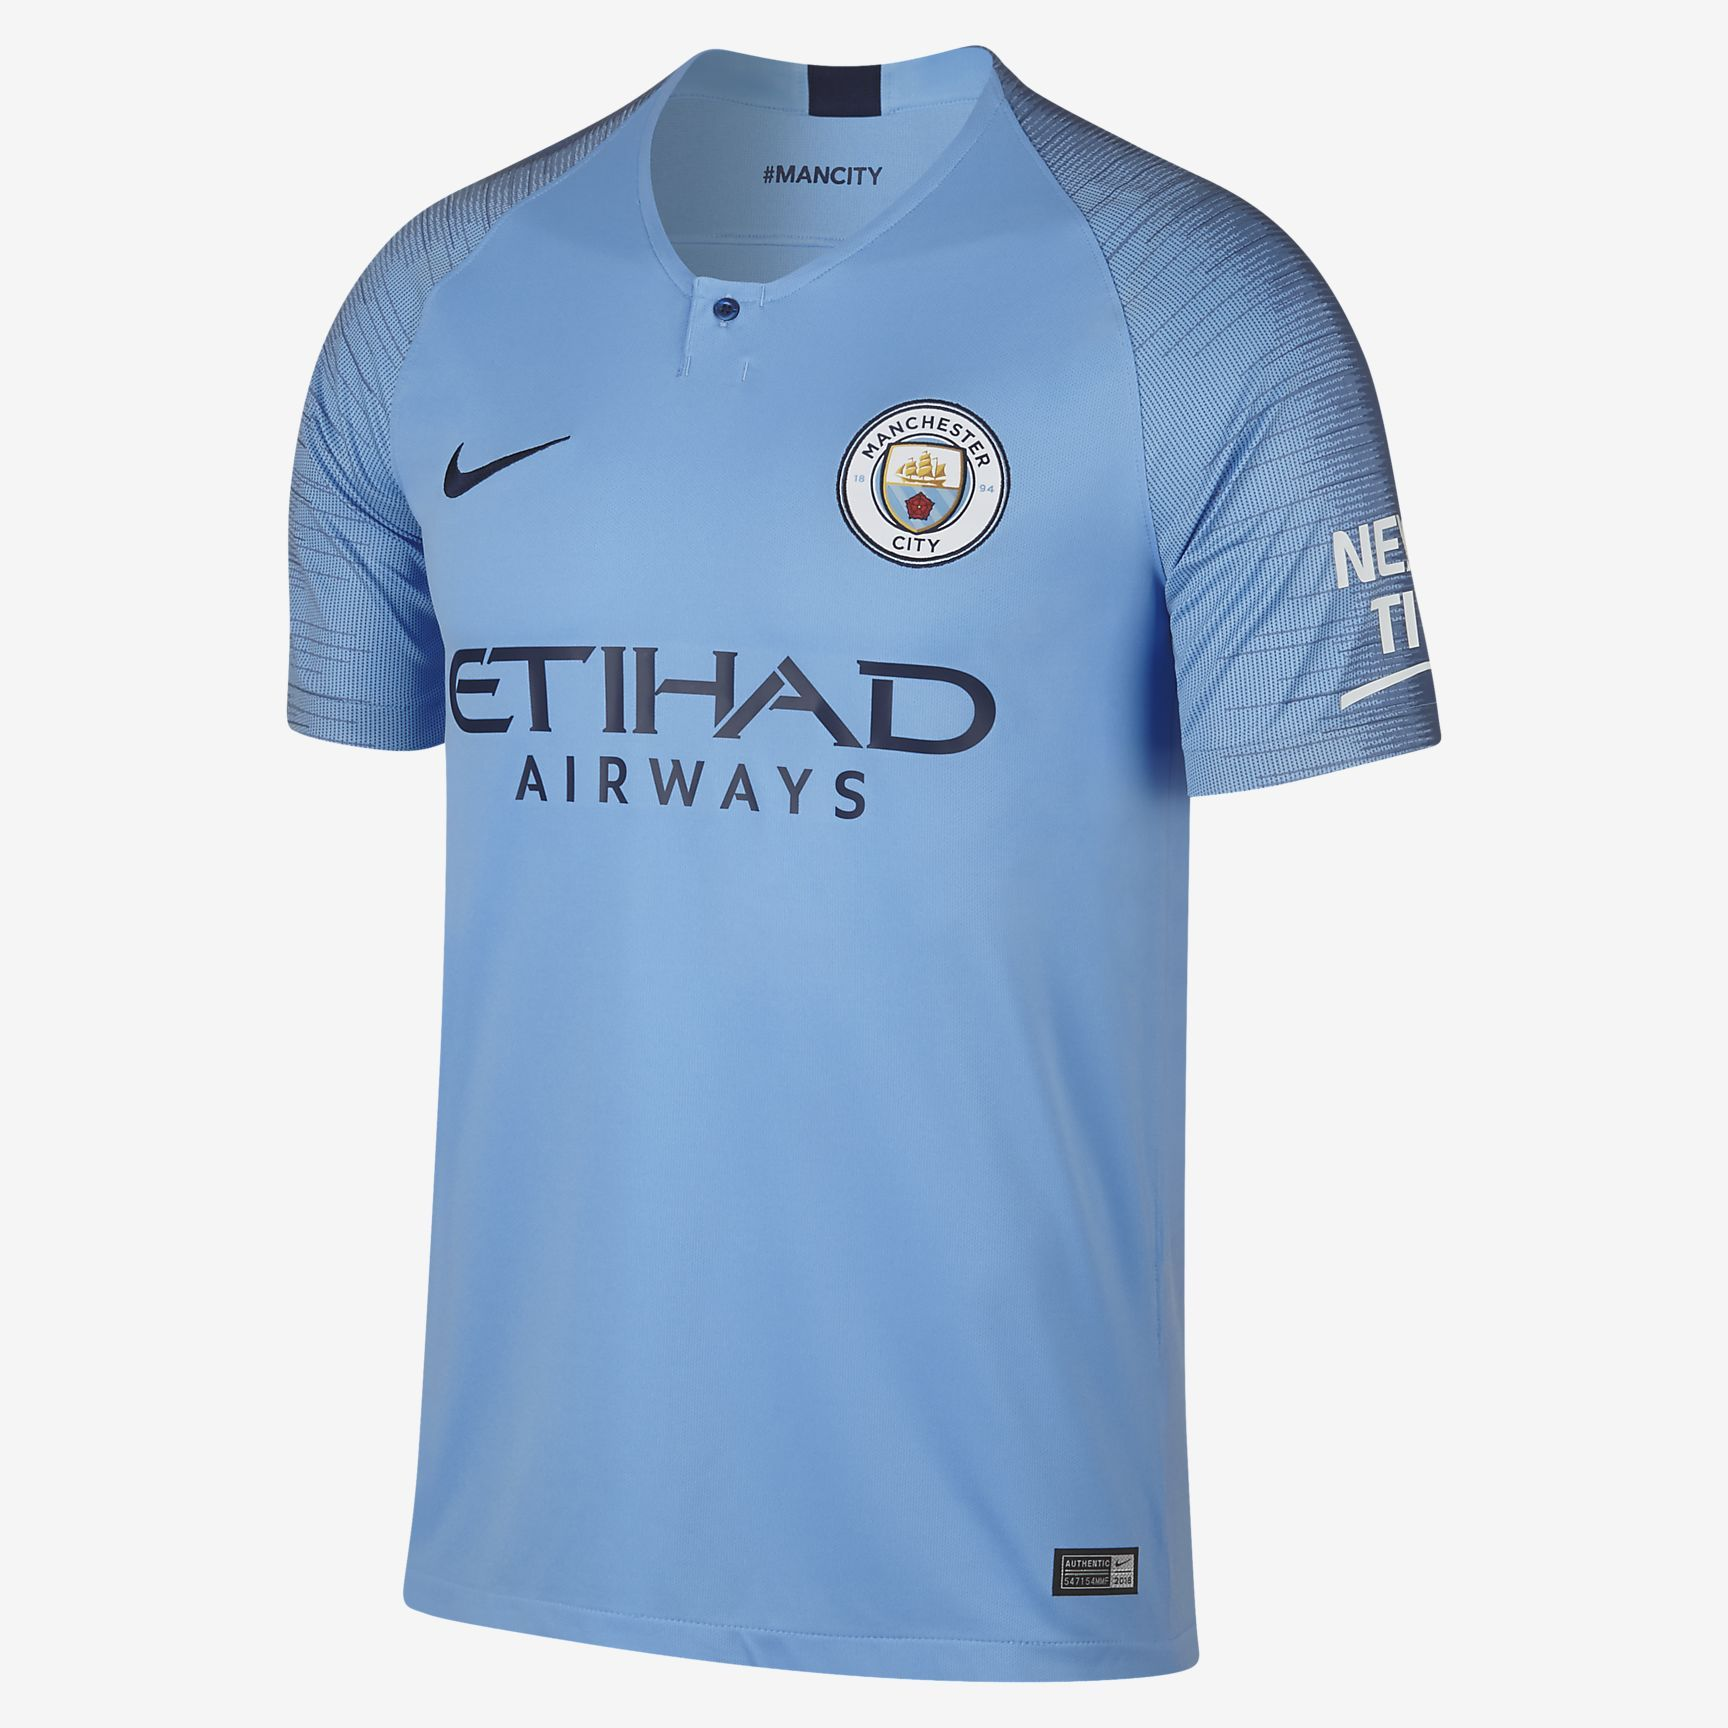 NIKE MEN'S MANCHESTER CITY FC STADIUM 2018/19 HOME JERSEY